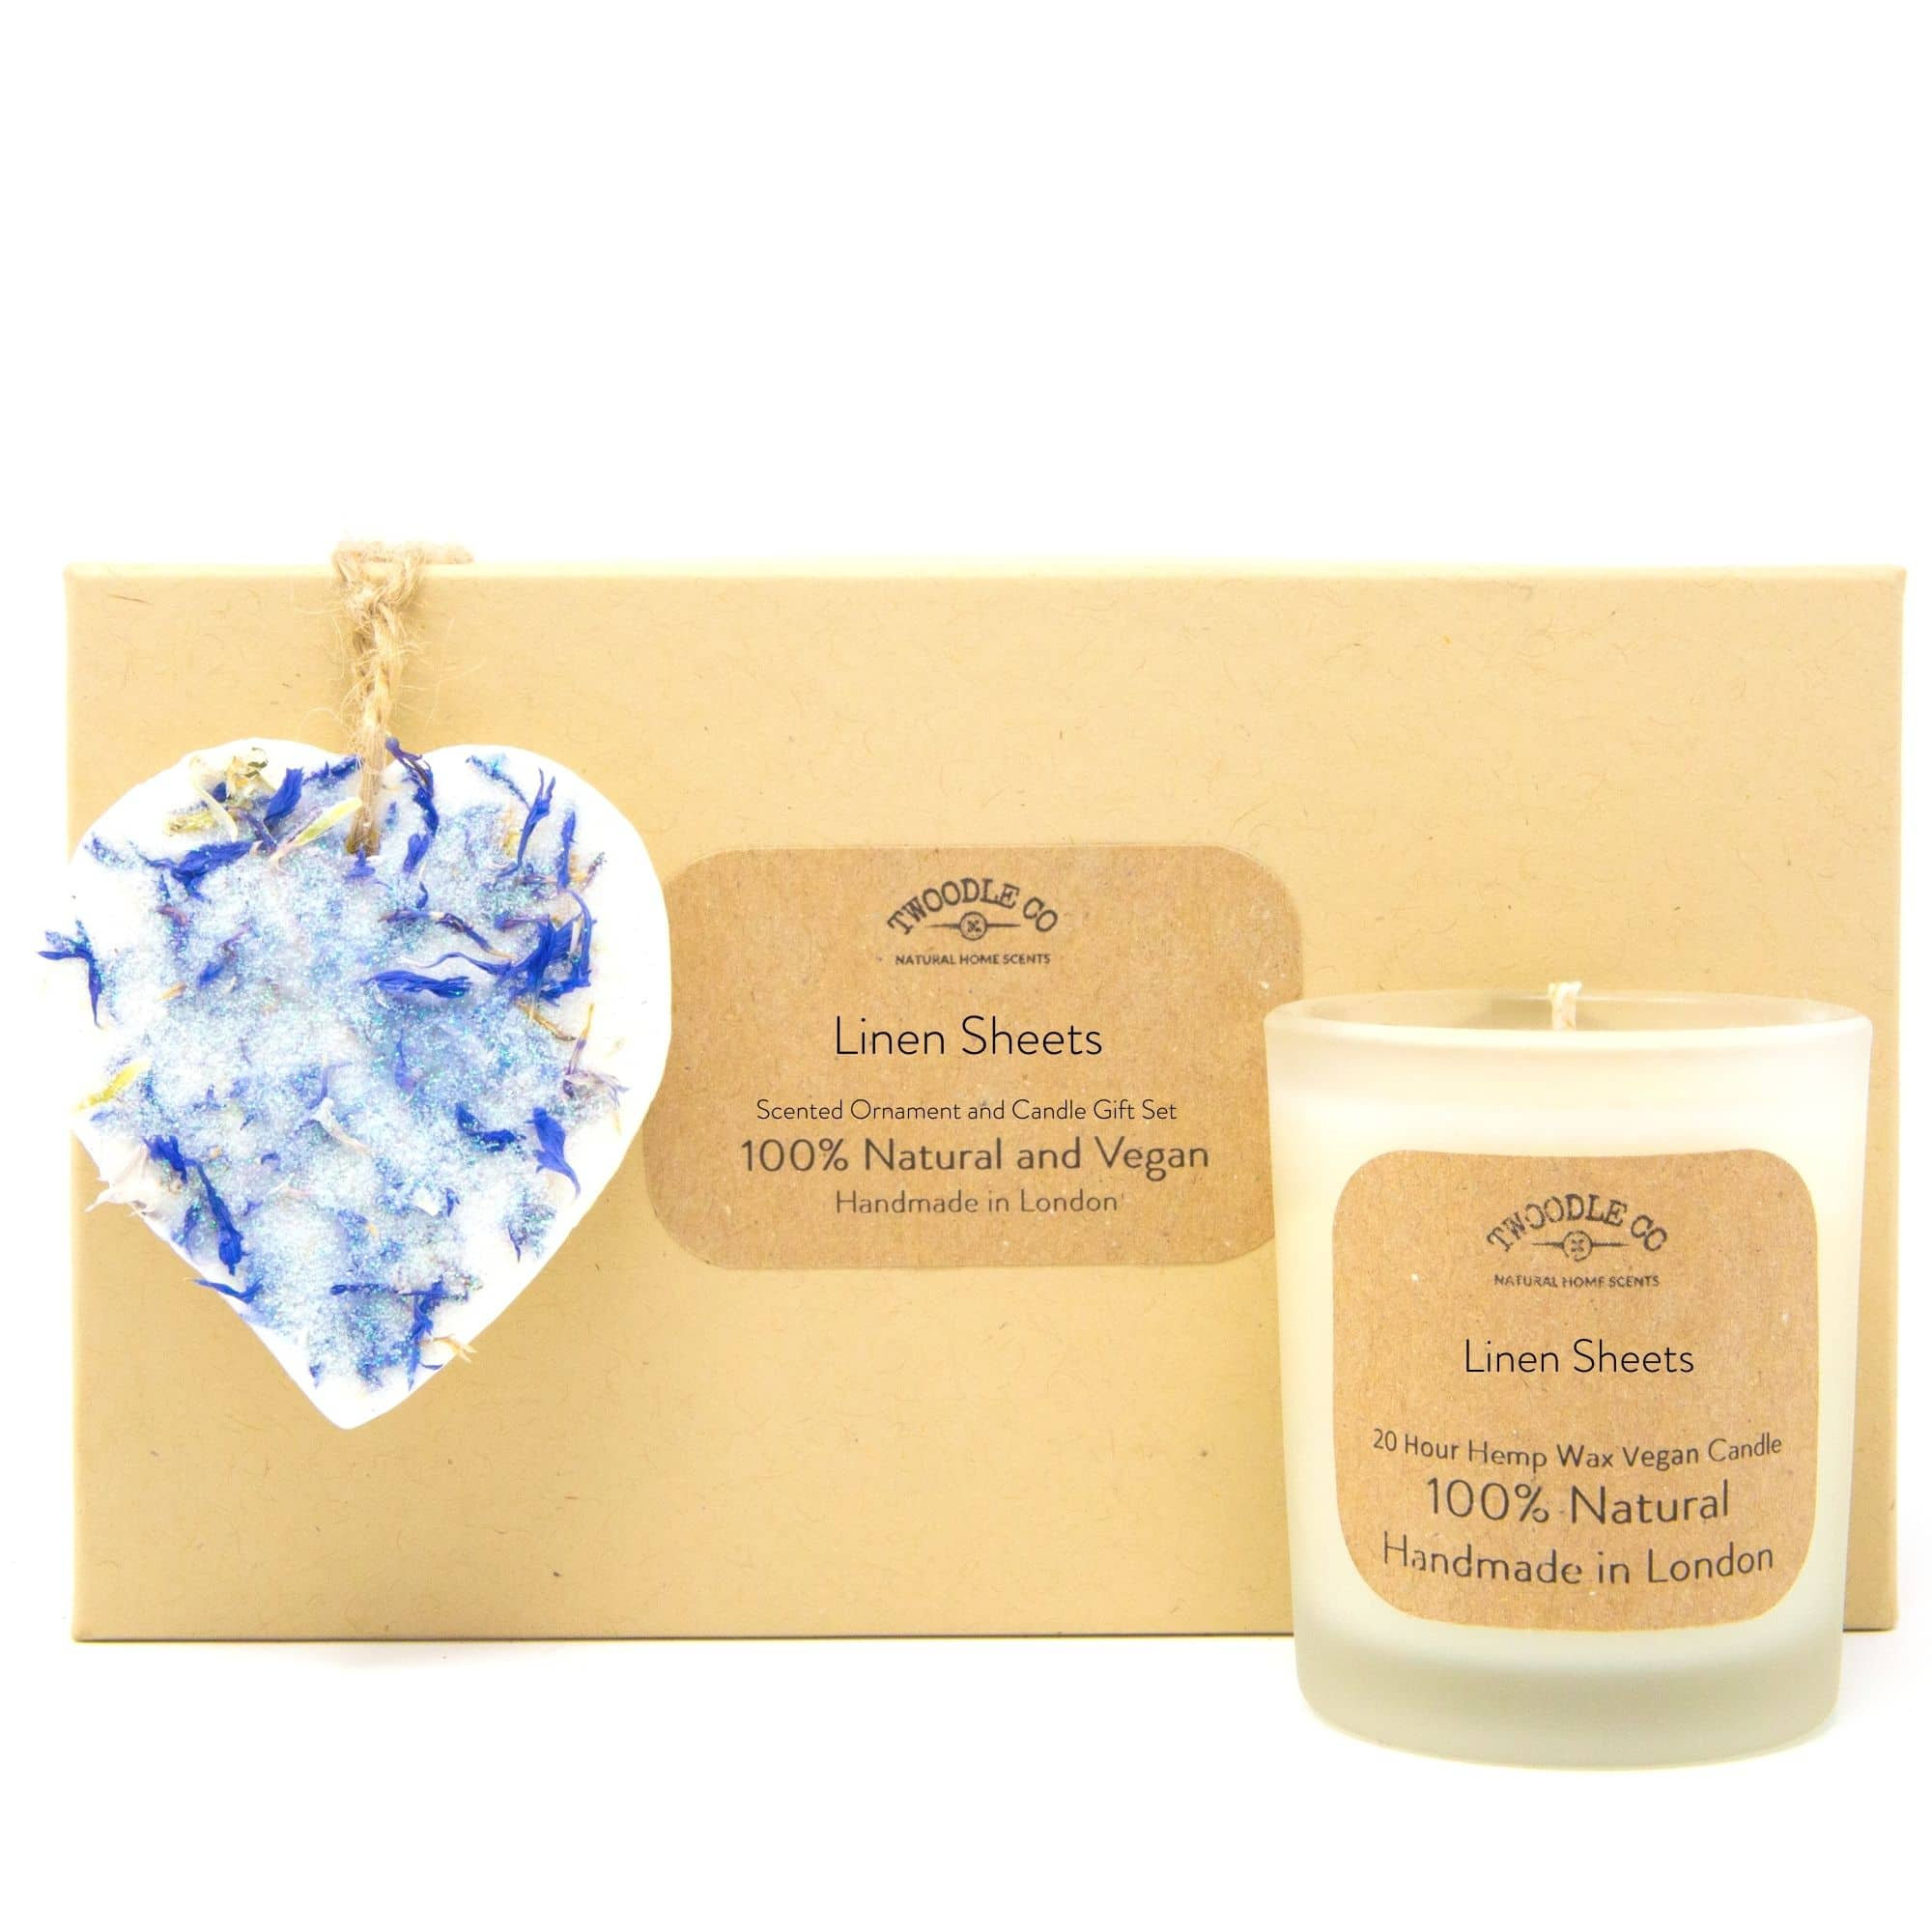 Linen Sheets | Scented Ornament and Candle Gift Set